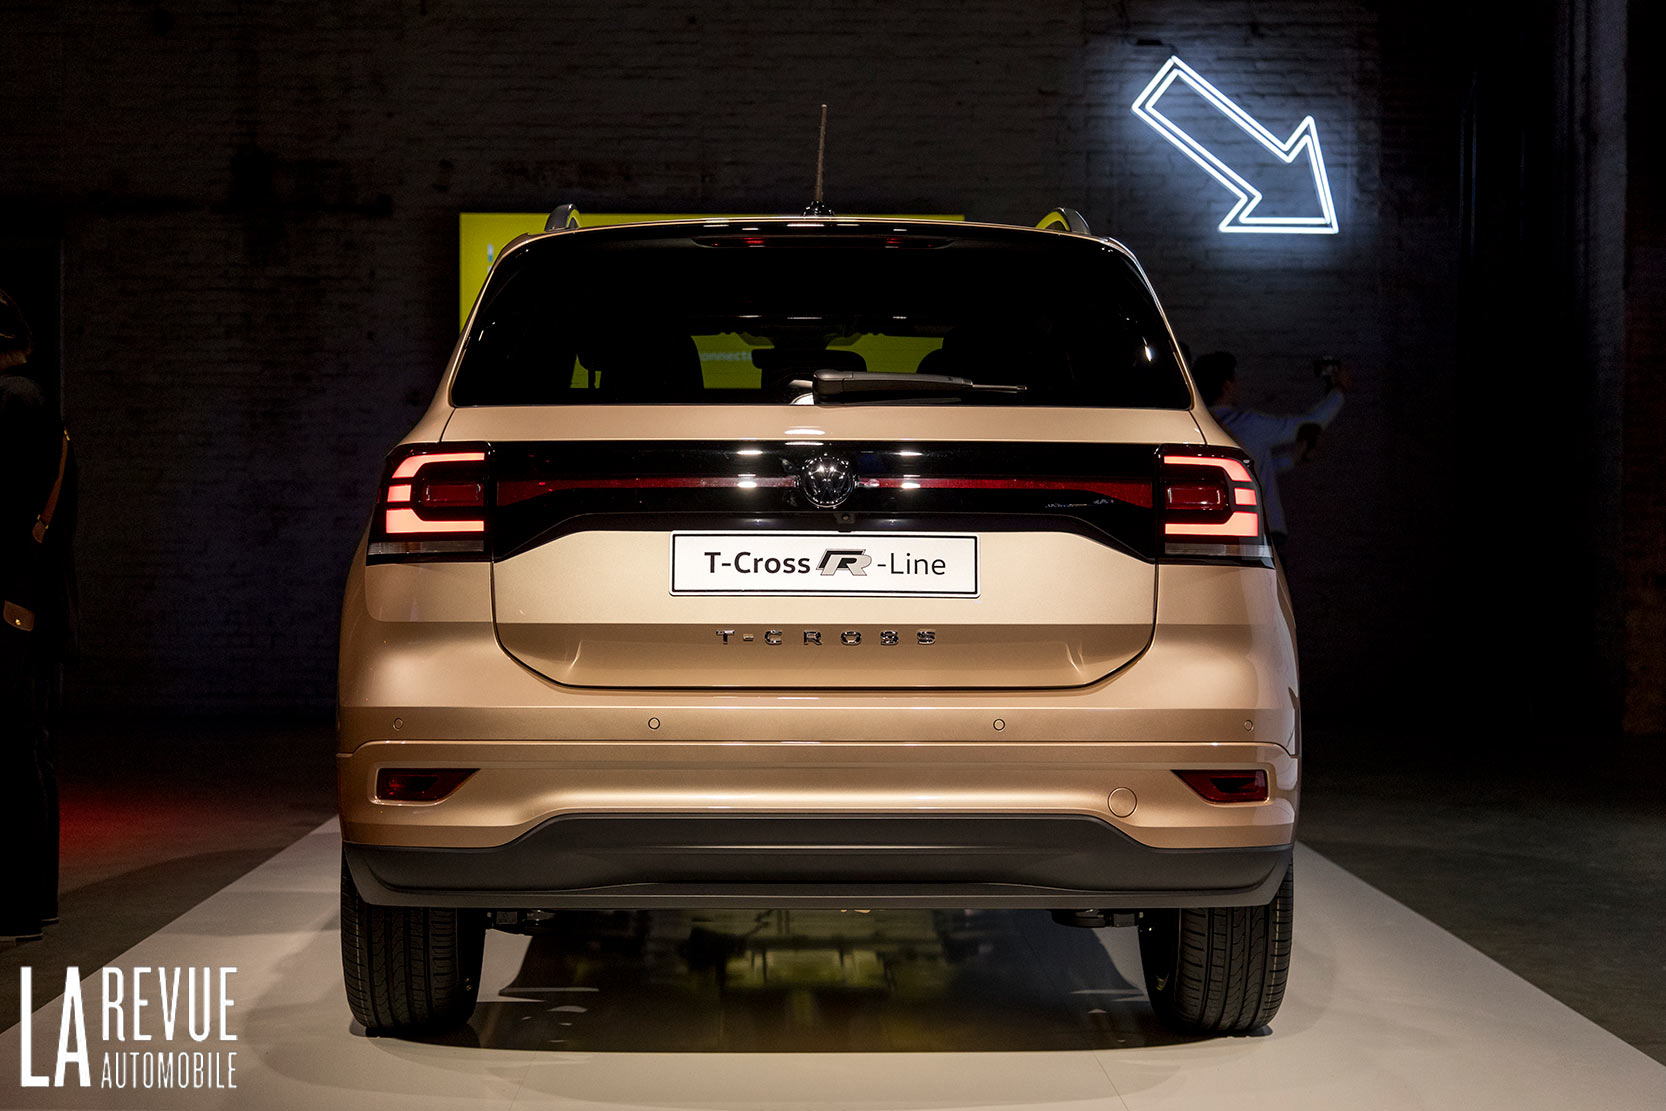 Exterieur_Volkswagen-T-Cross-Reveal_16